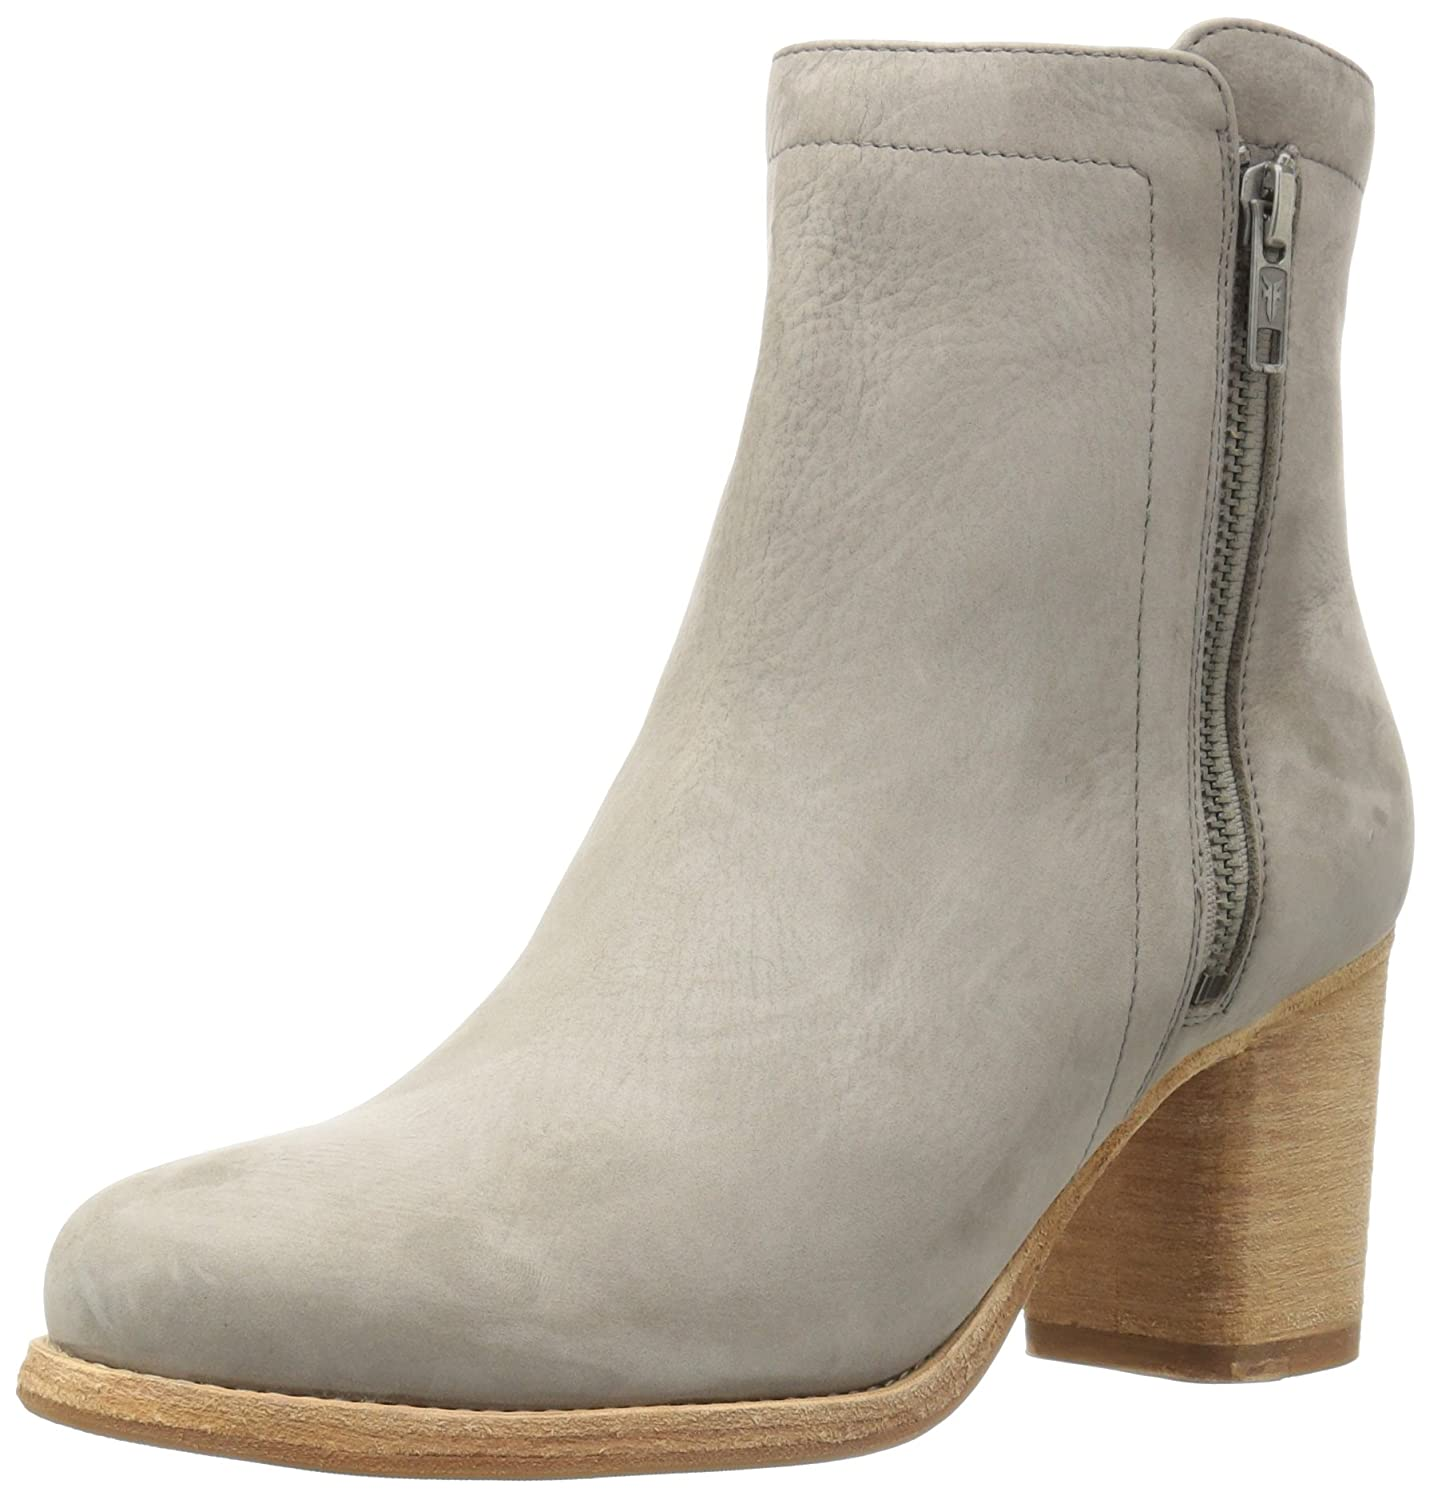 FRYE Women's Addie Double Zip Boot B01H4X7LES 9 B(M) US|Grey